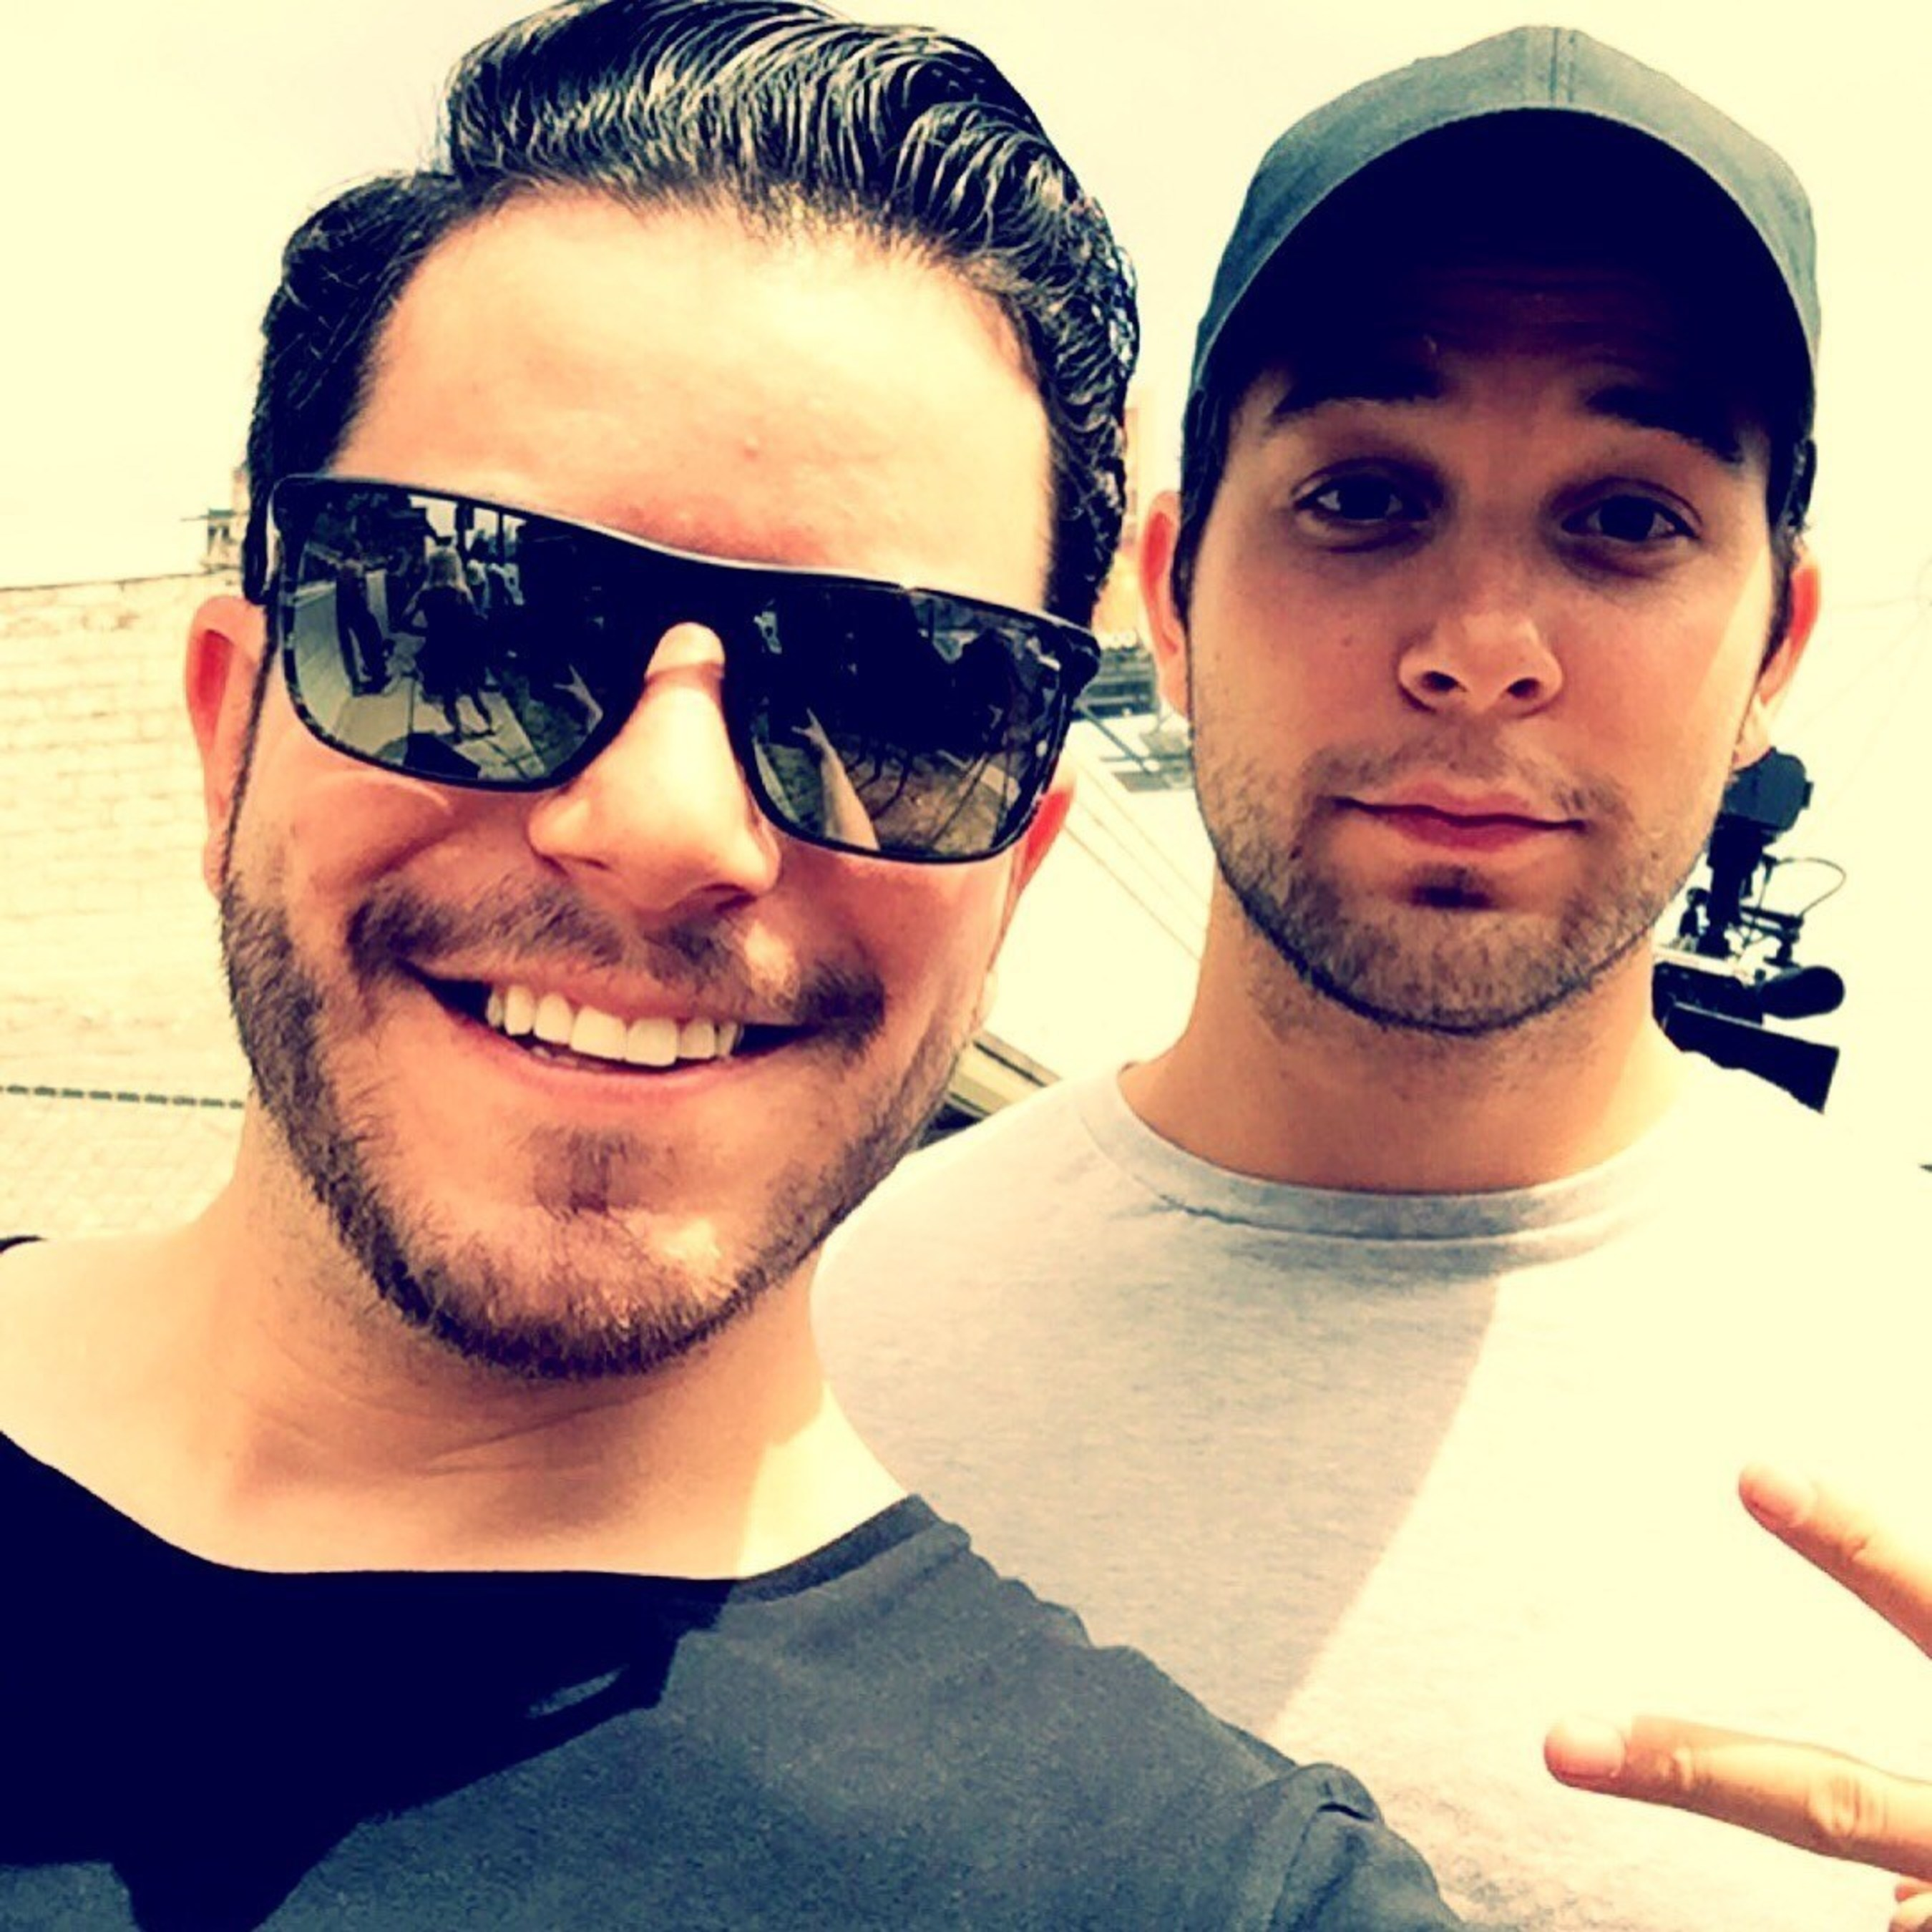 Grungy Gentleman founder Jace Lipstein, wearing the Flat Island sunglass from Maui Jim, shown here with his brother, actor Skylar Astin.